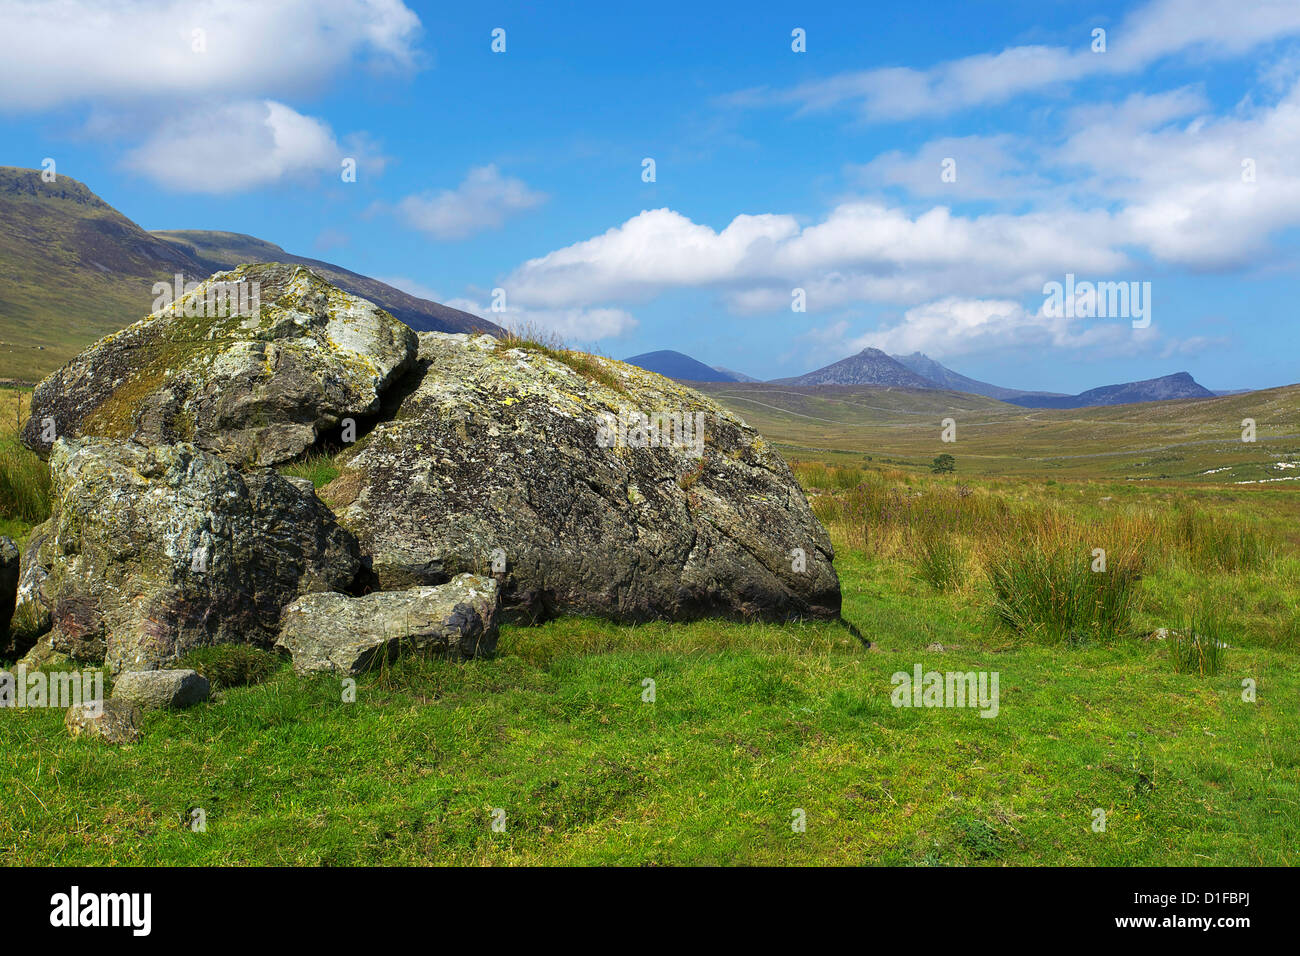 Slieve Muck, Mourne Mountains, County Down, Ulster, Northern Ireland, United Kingdom, Europe - Stock Image